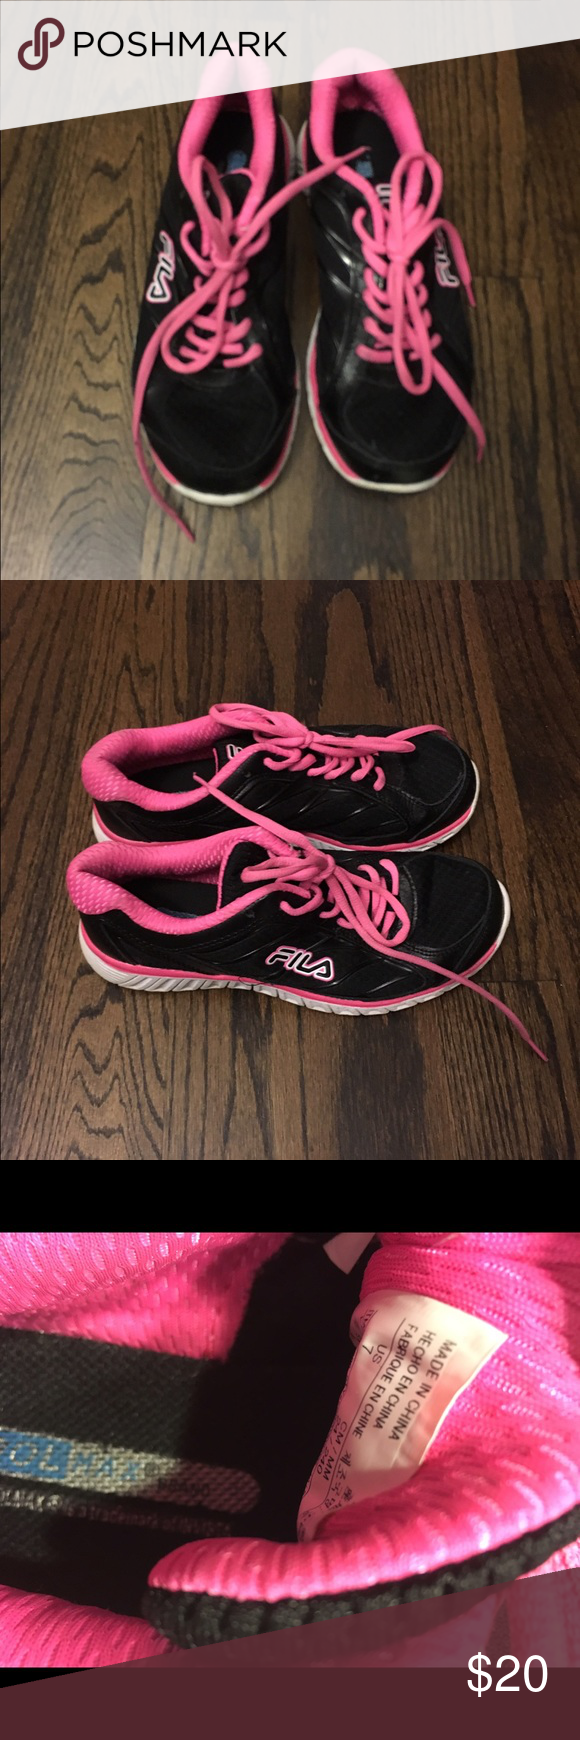 FILA Coolmax Gymshoes Coolmax. Size 7. Lightly worn. Pink and Black. Fila Shoes Sneakers